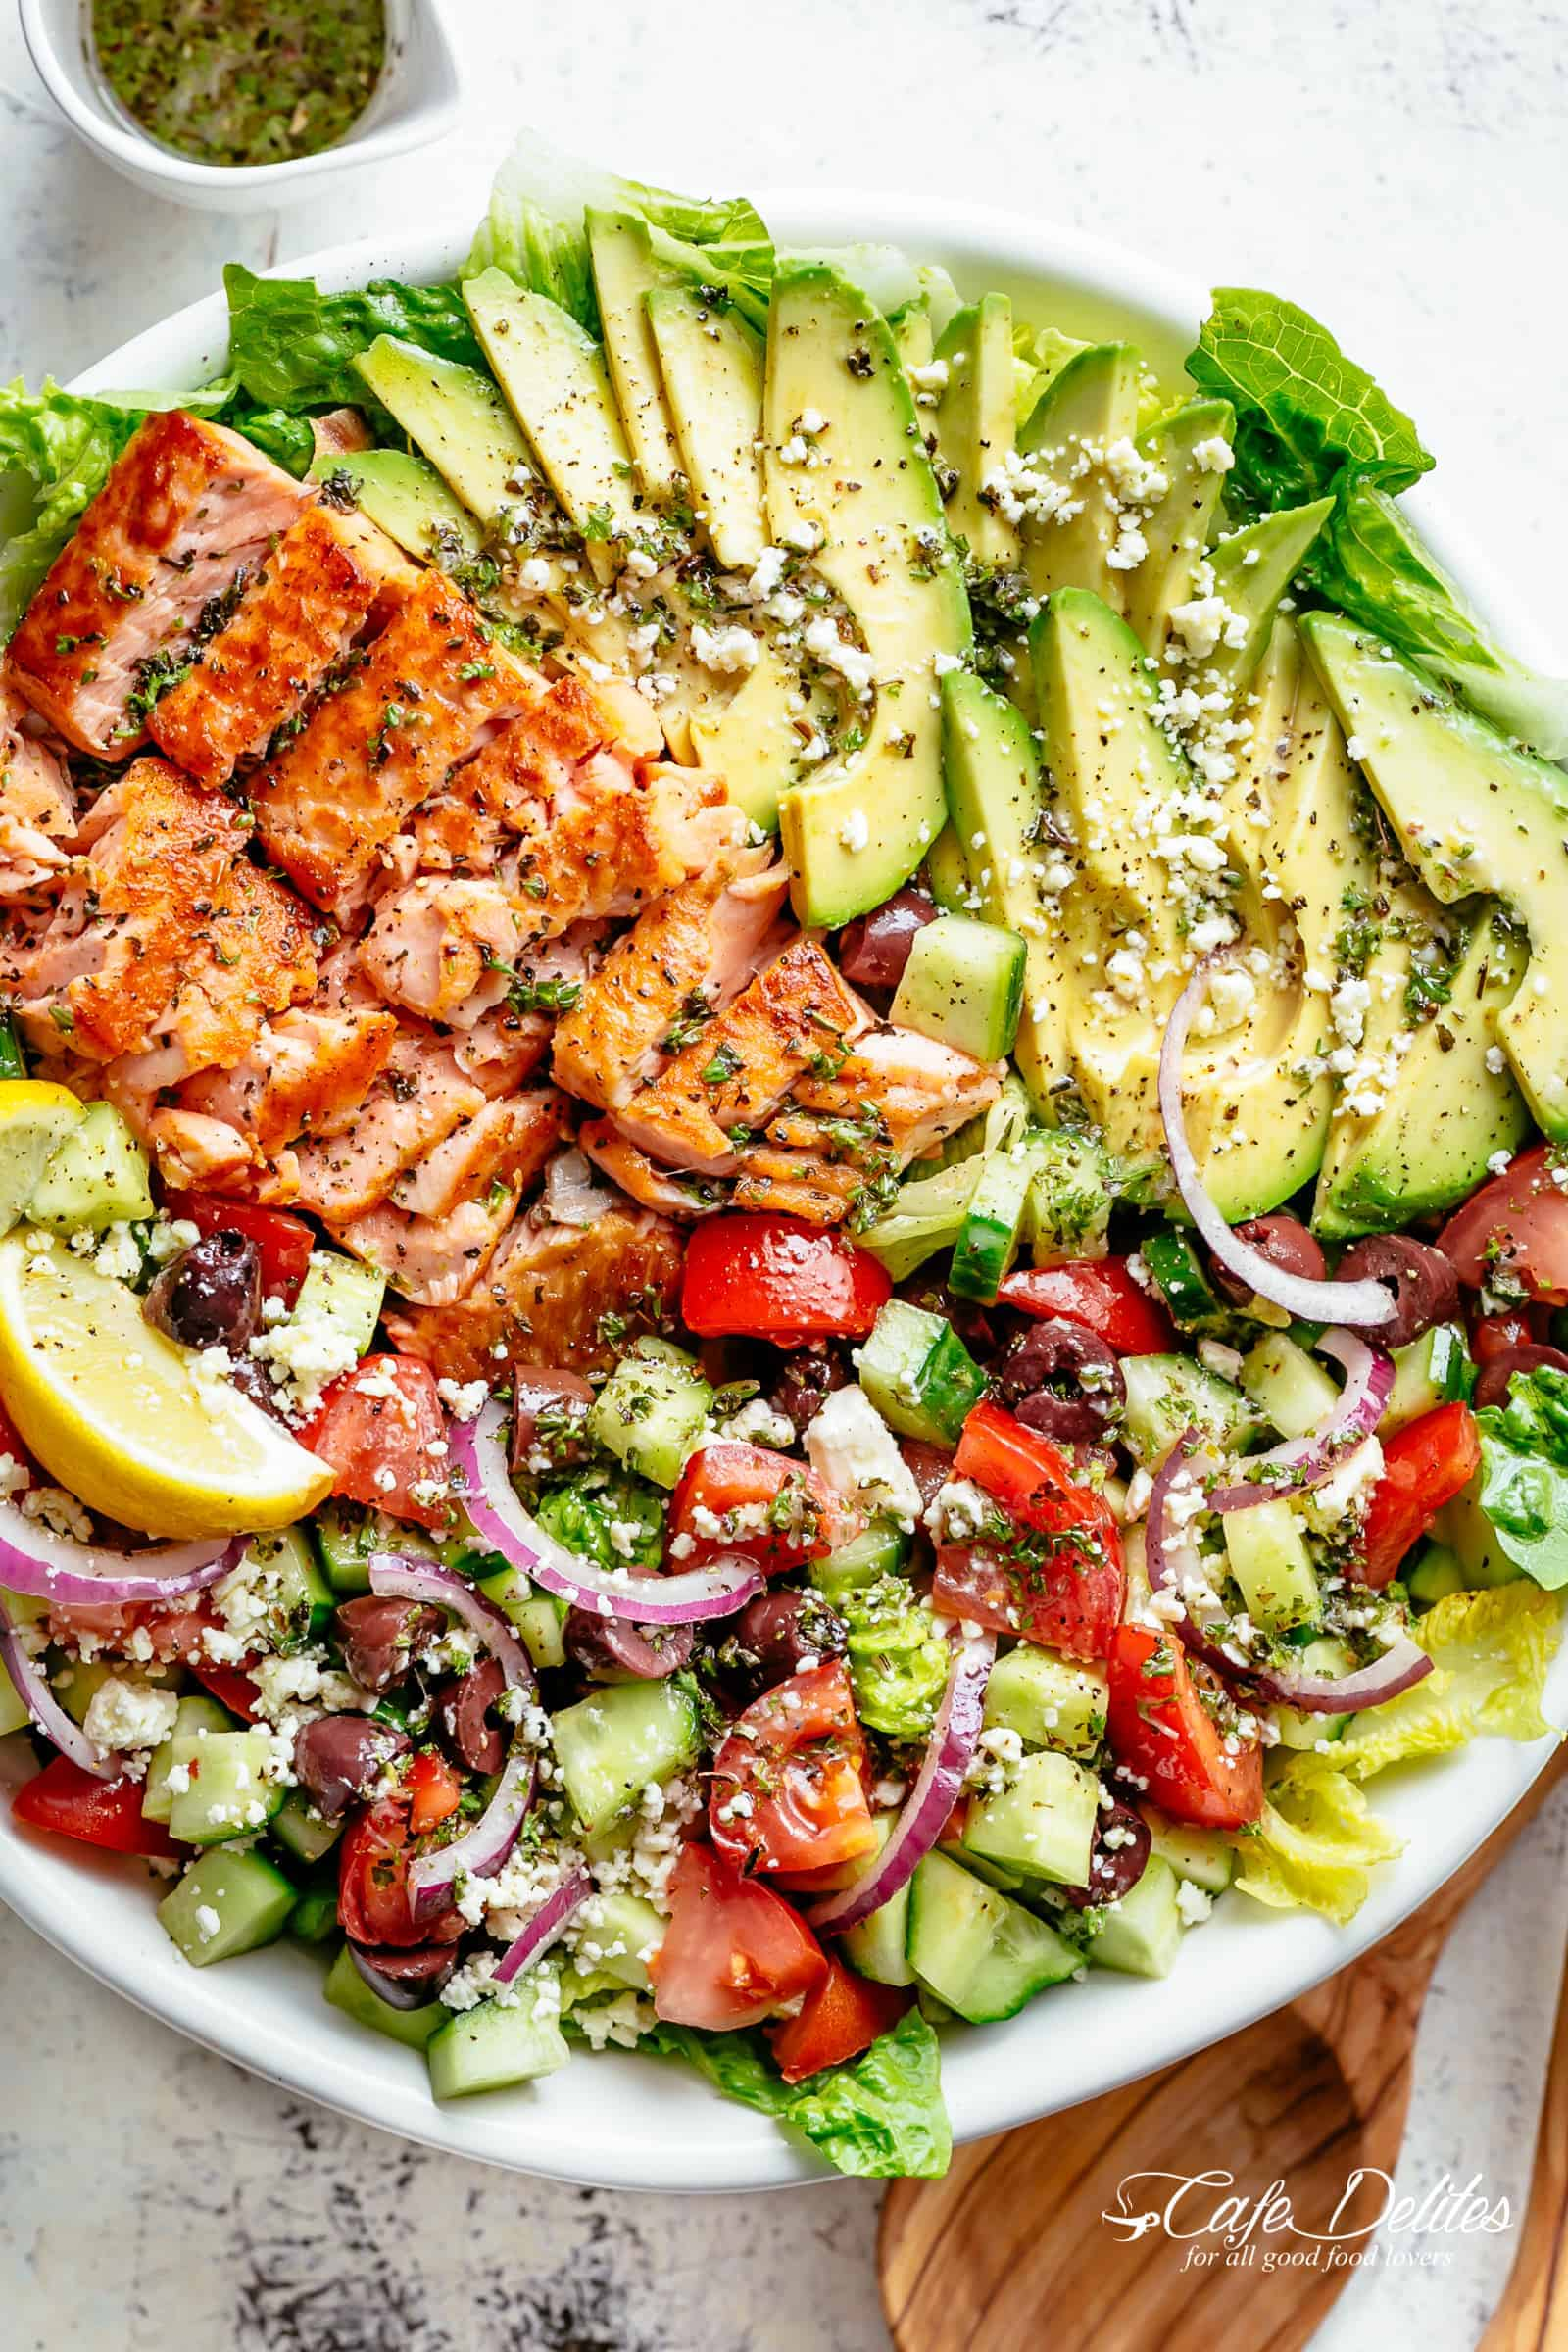 Mediterranean Salmon Salad from Cafe Delites on foodiecrush.com